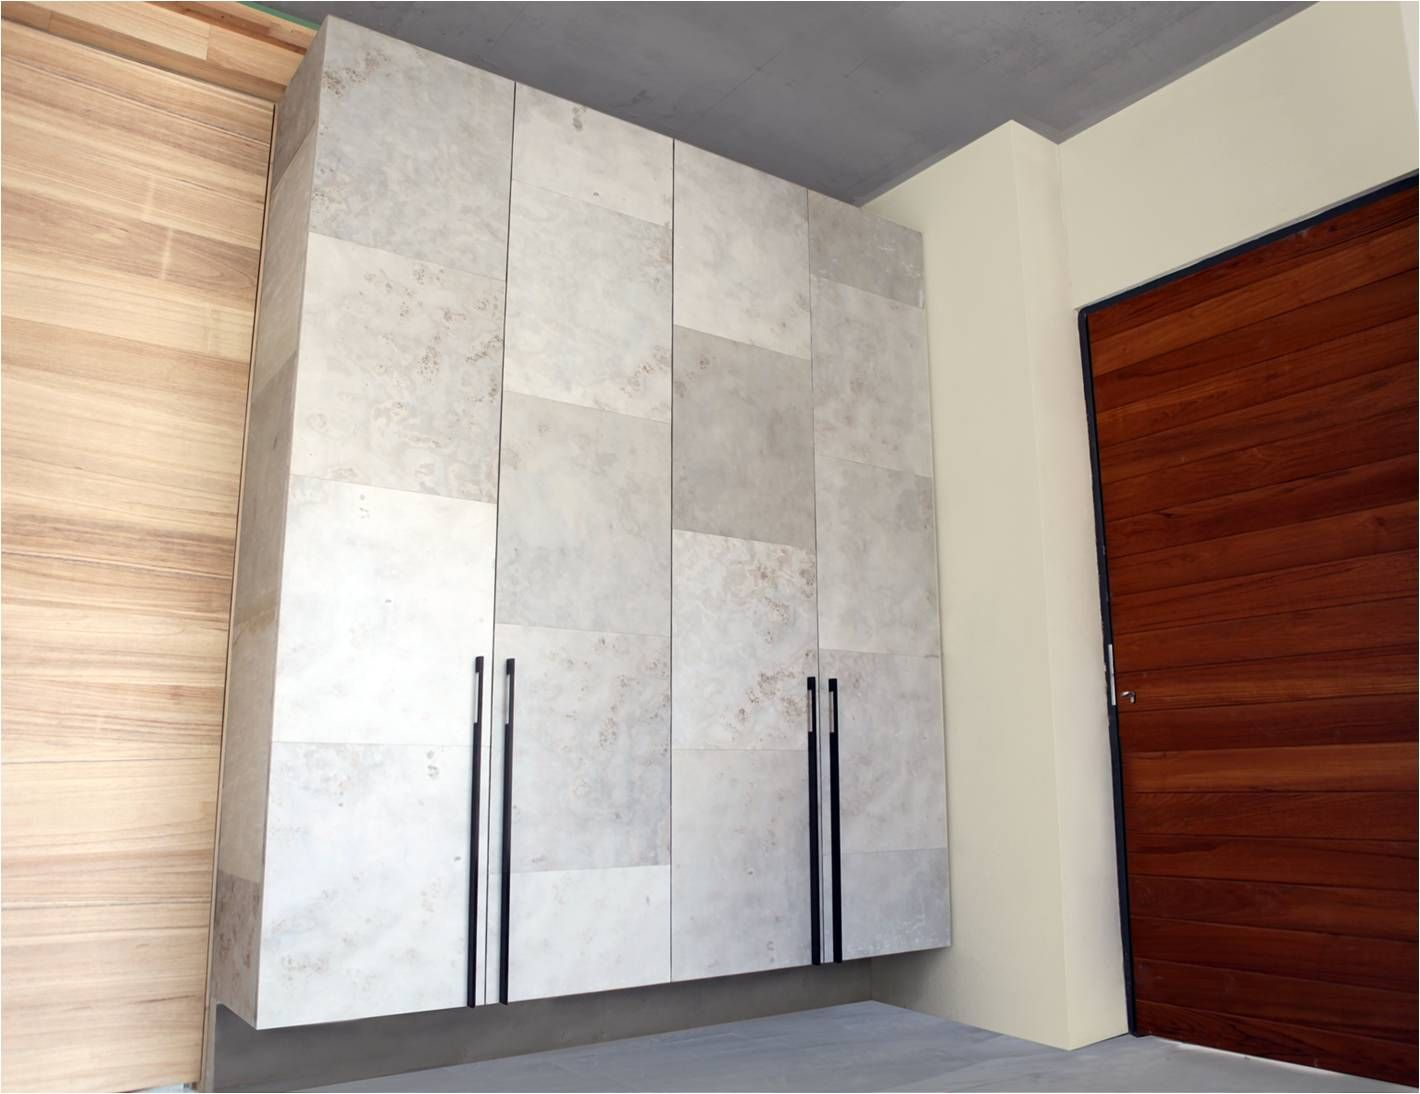 Slate veneer stone tile feature wall cladding wall cladding slate veneer stone tile feature wall cladding doublecrazyfo Choice Image